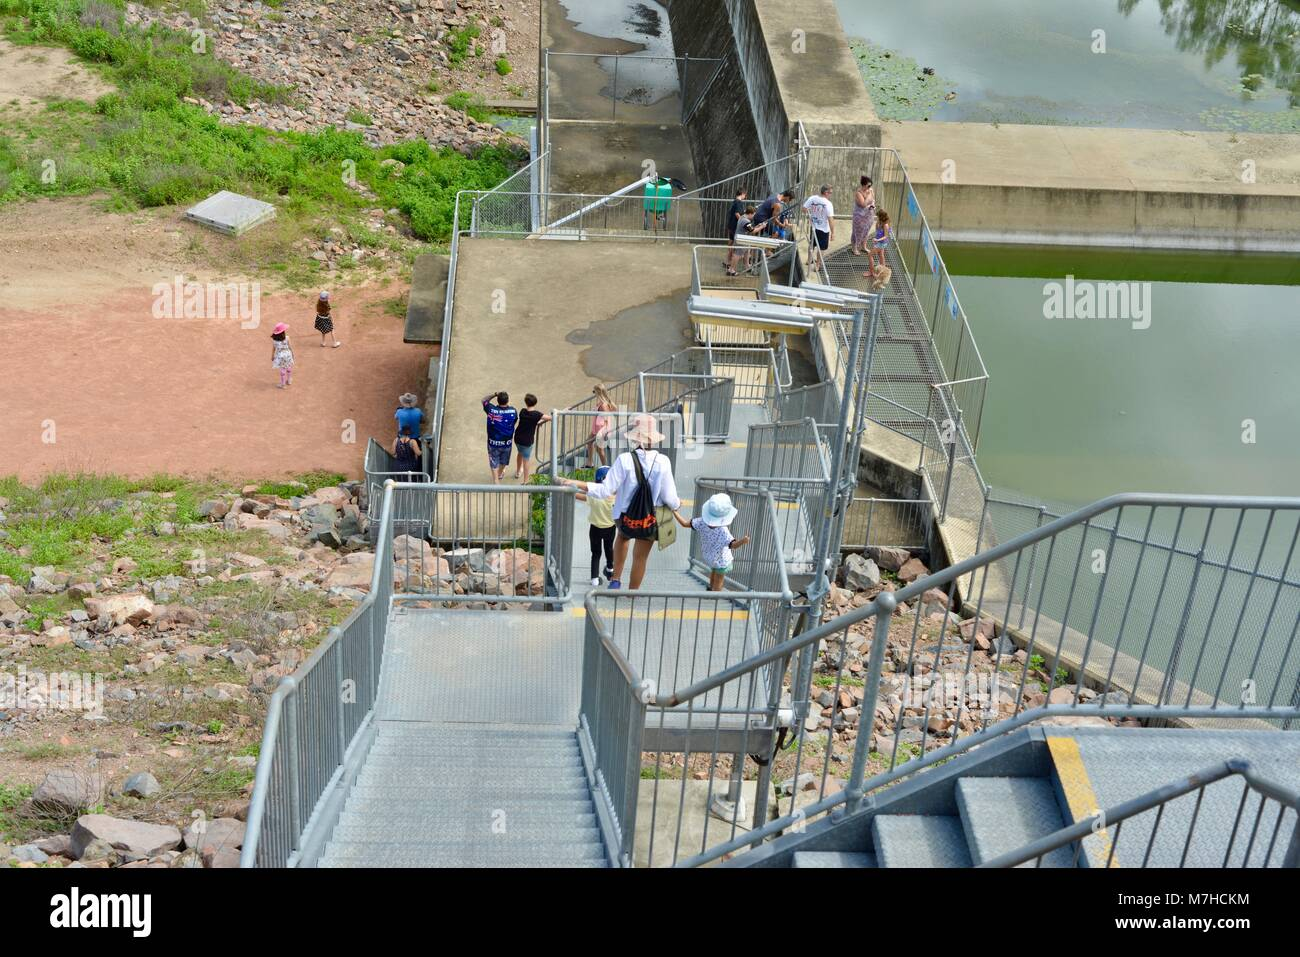 Children and adults walking down galvanised steel stairs, Ross River Dam, Ross Dam Access, Kelso QLD, Australia - Stock Image